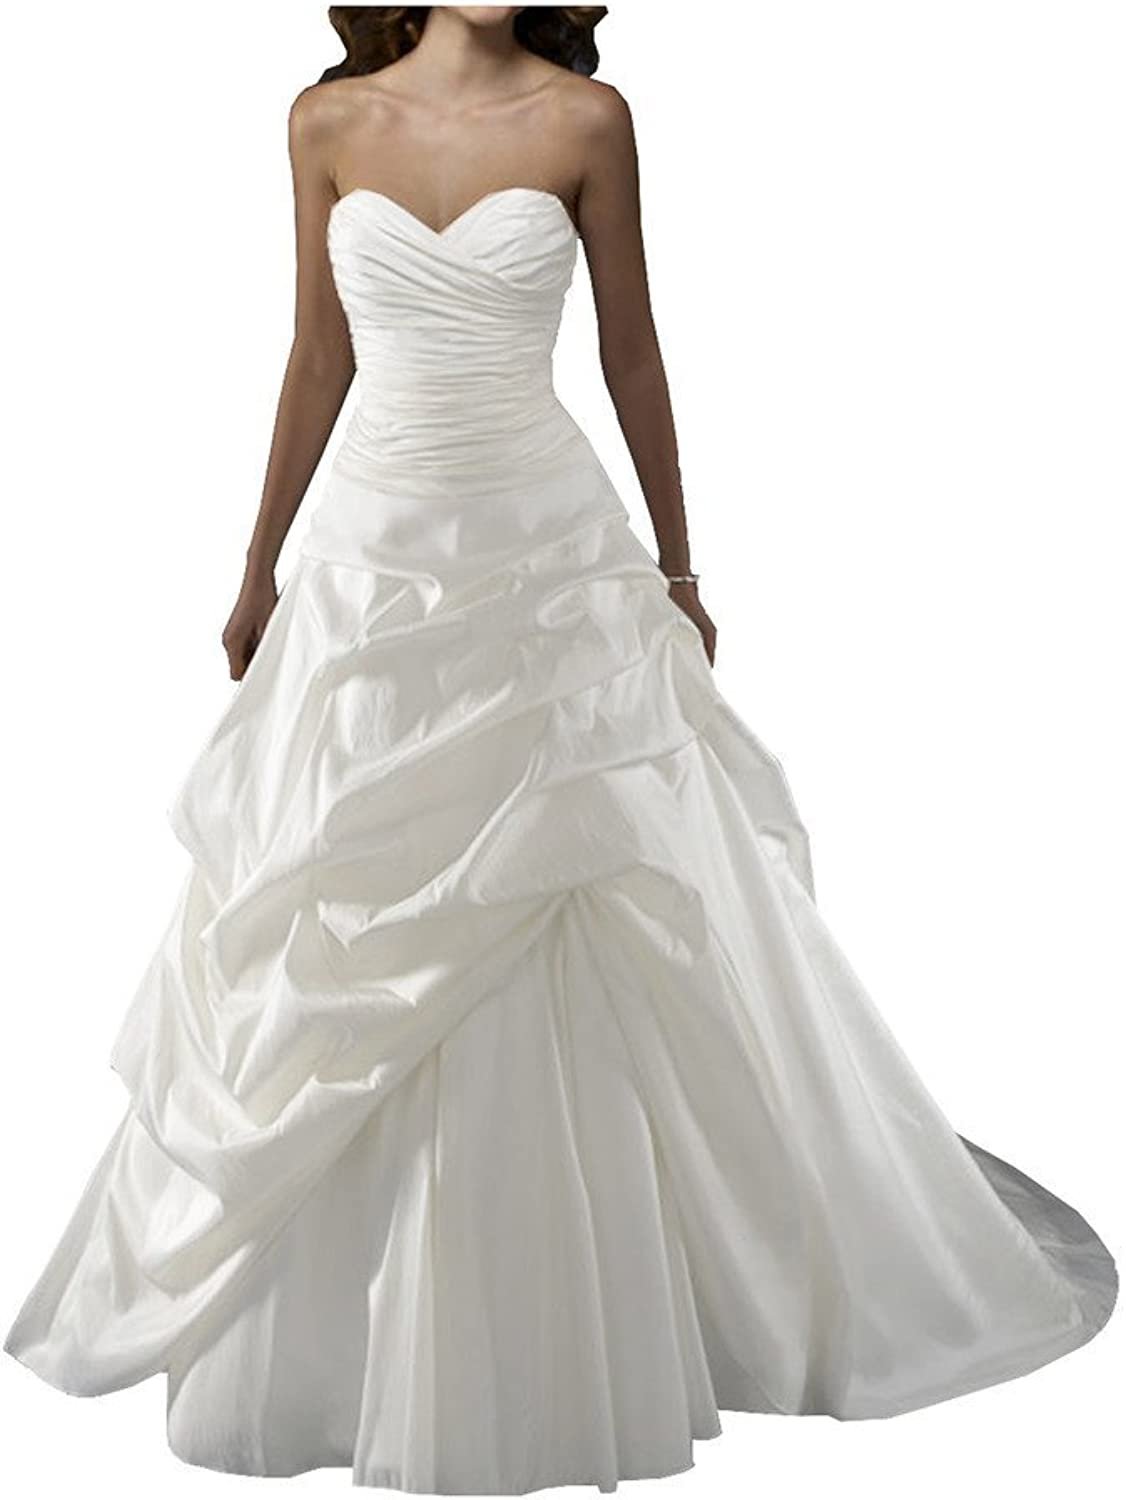 Angel Bride White Modest Taffeta Ruffled Ball Gown Strapless Wedding Dress